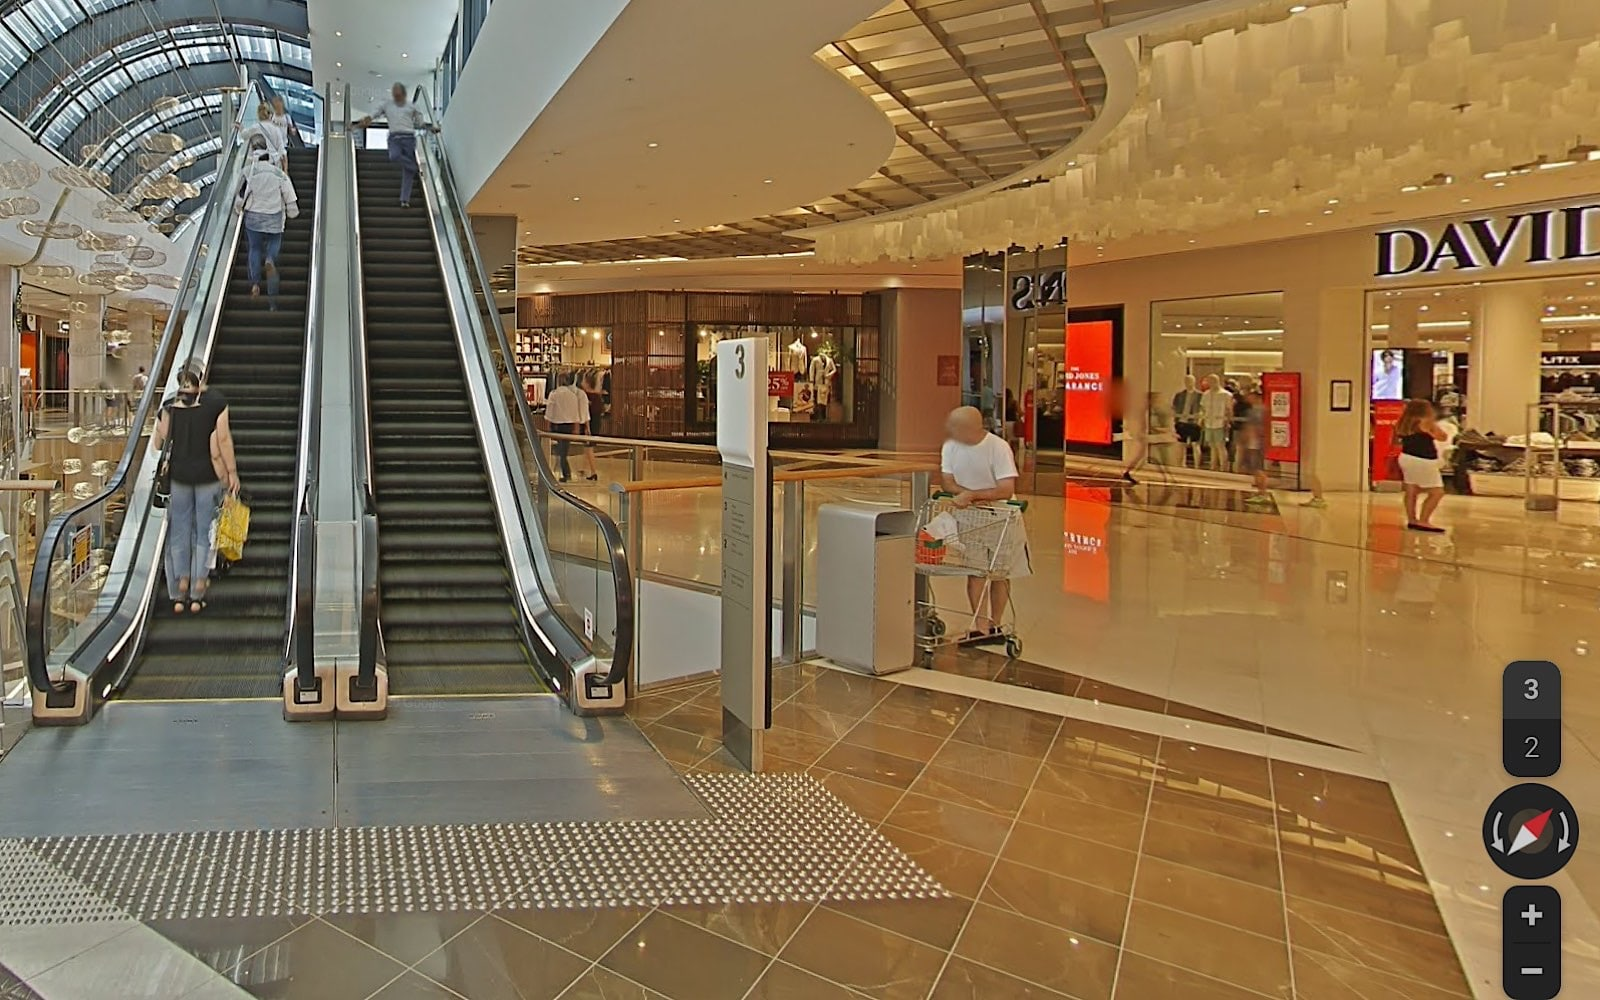 Google Street View in Macquarie Shopping Centre